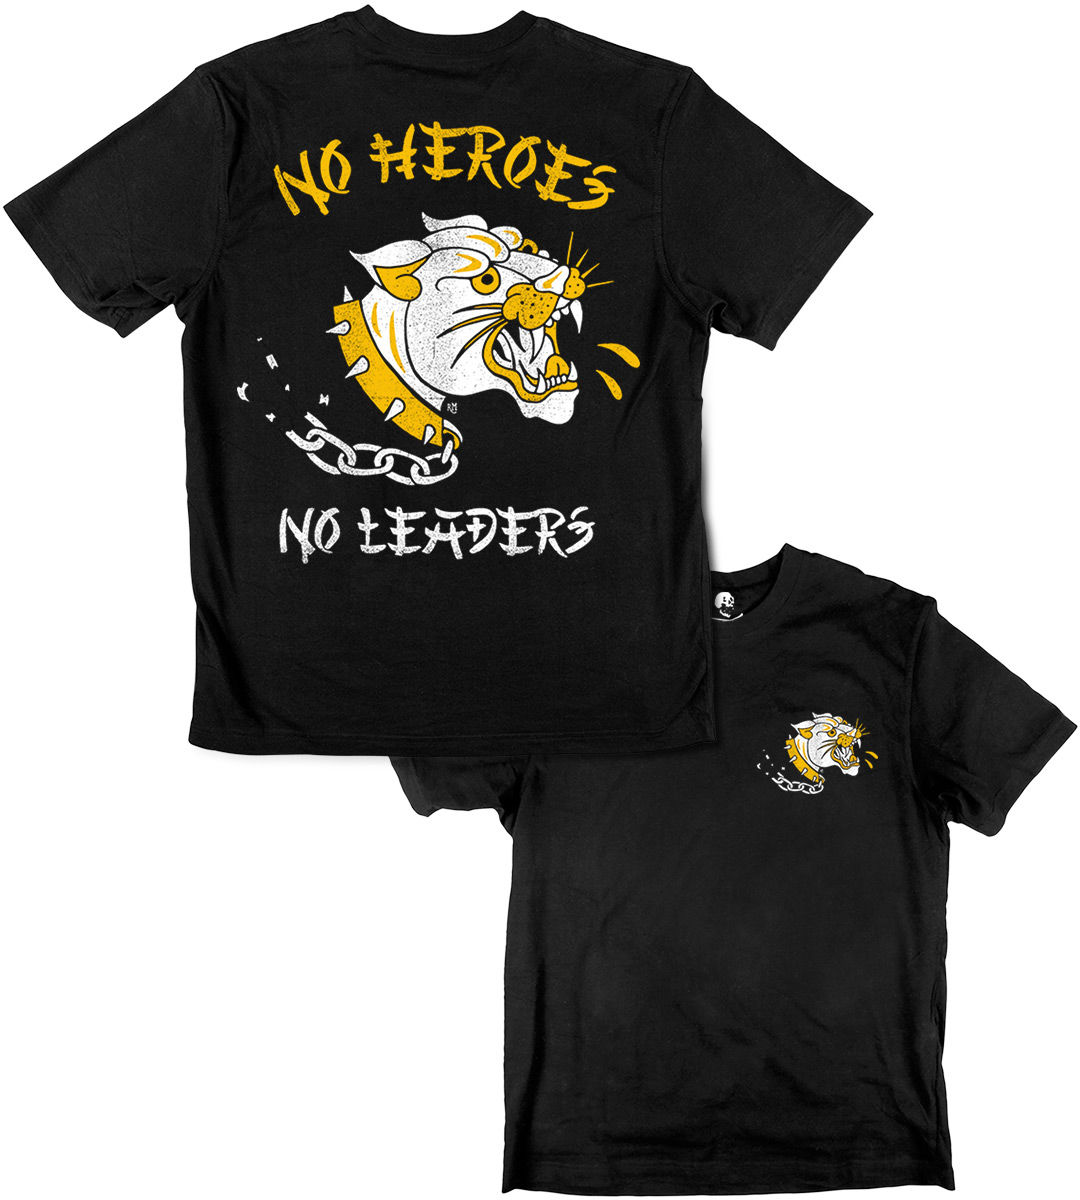 NO HEROES, NO LEADERS - product image